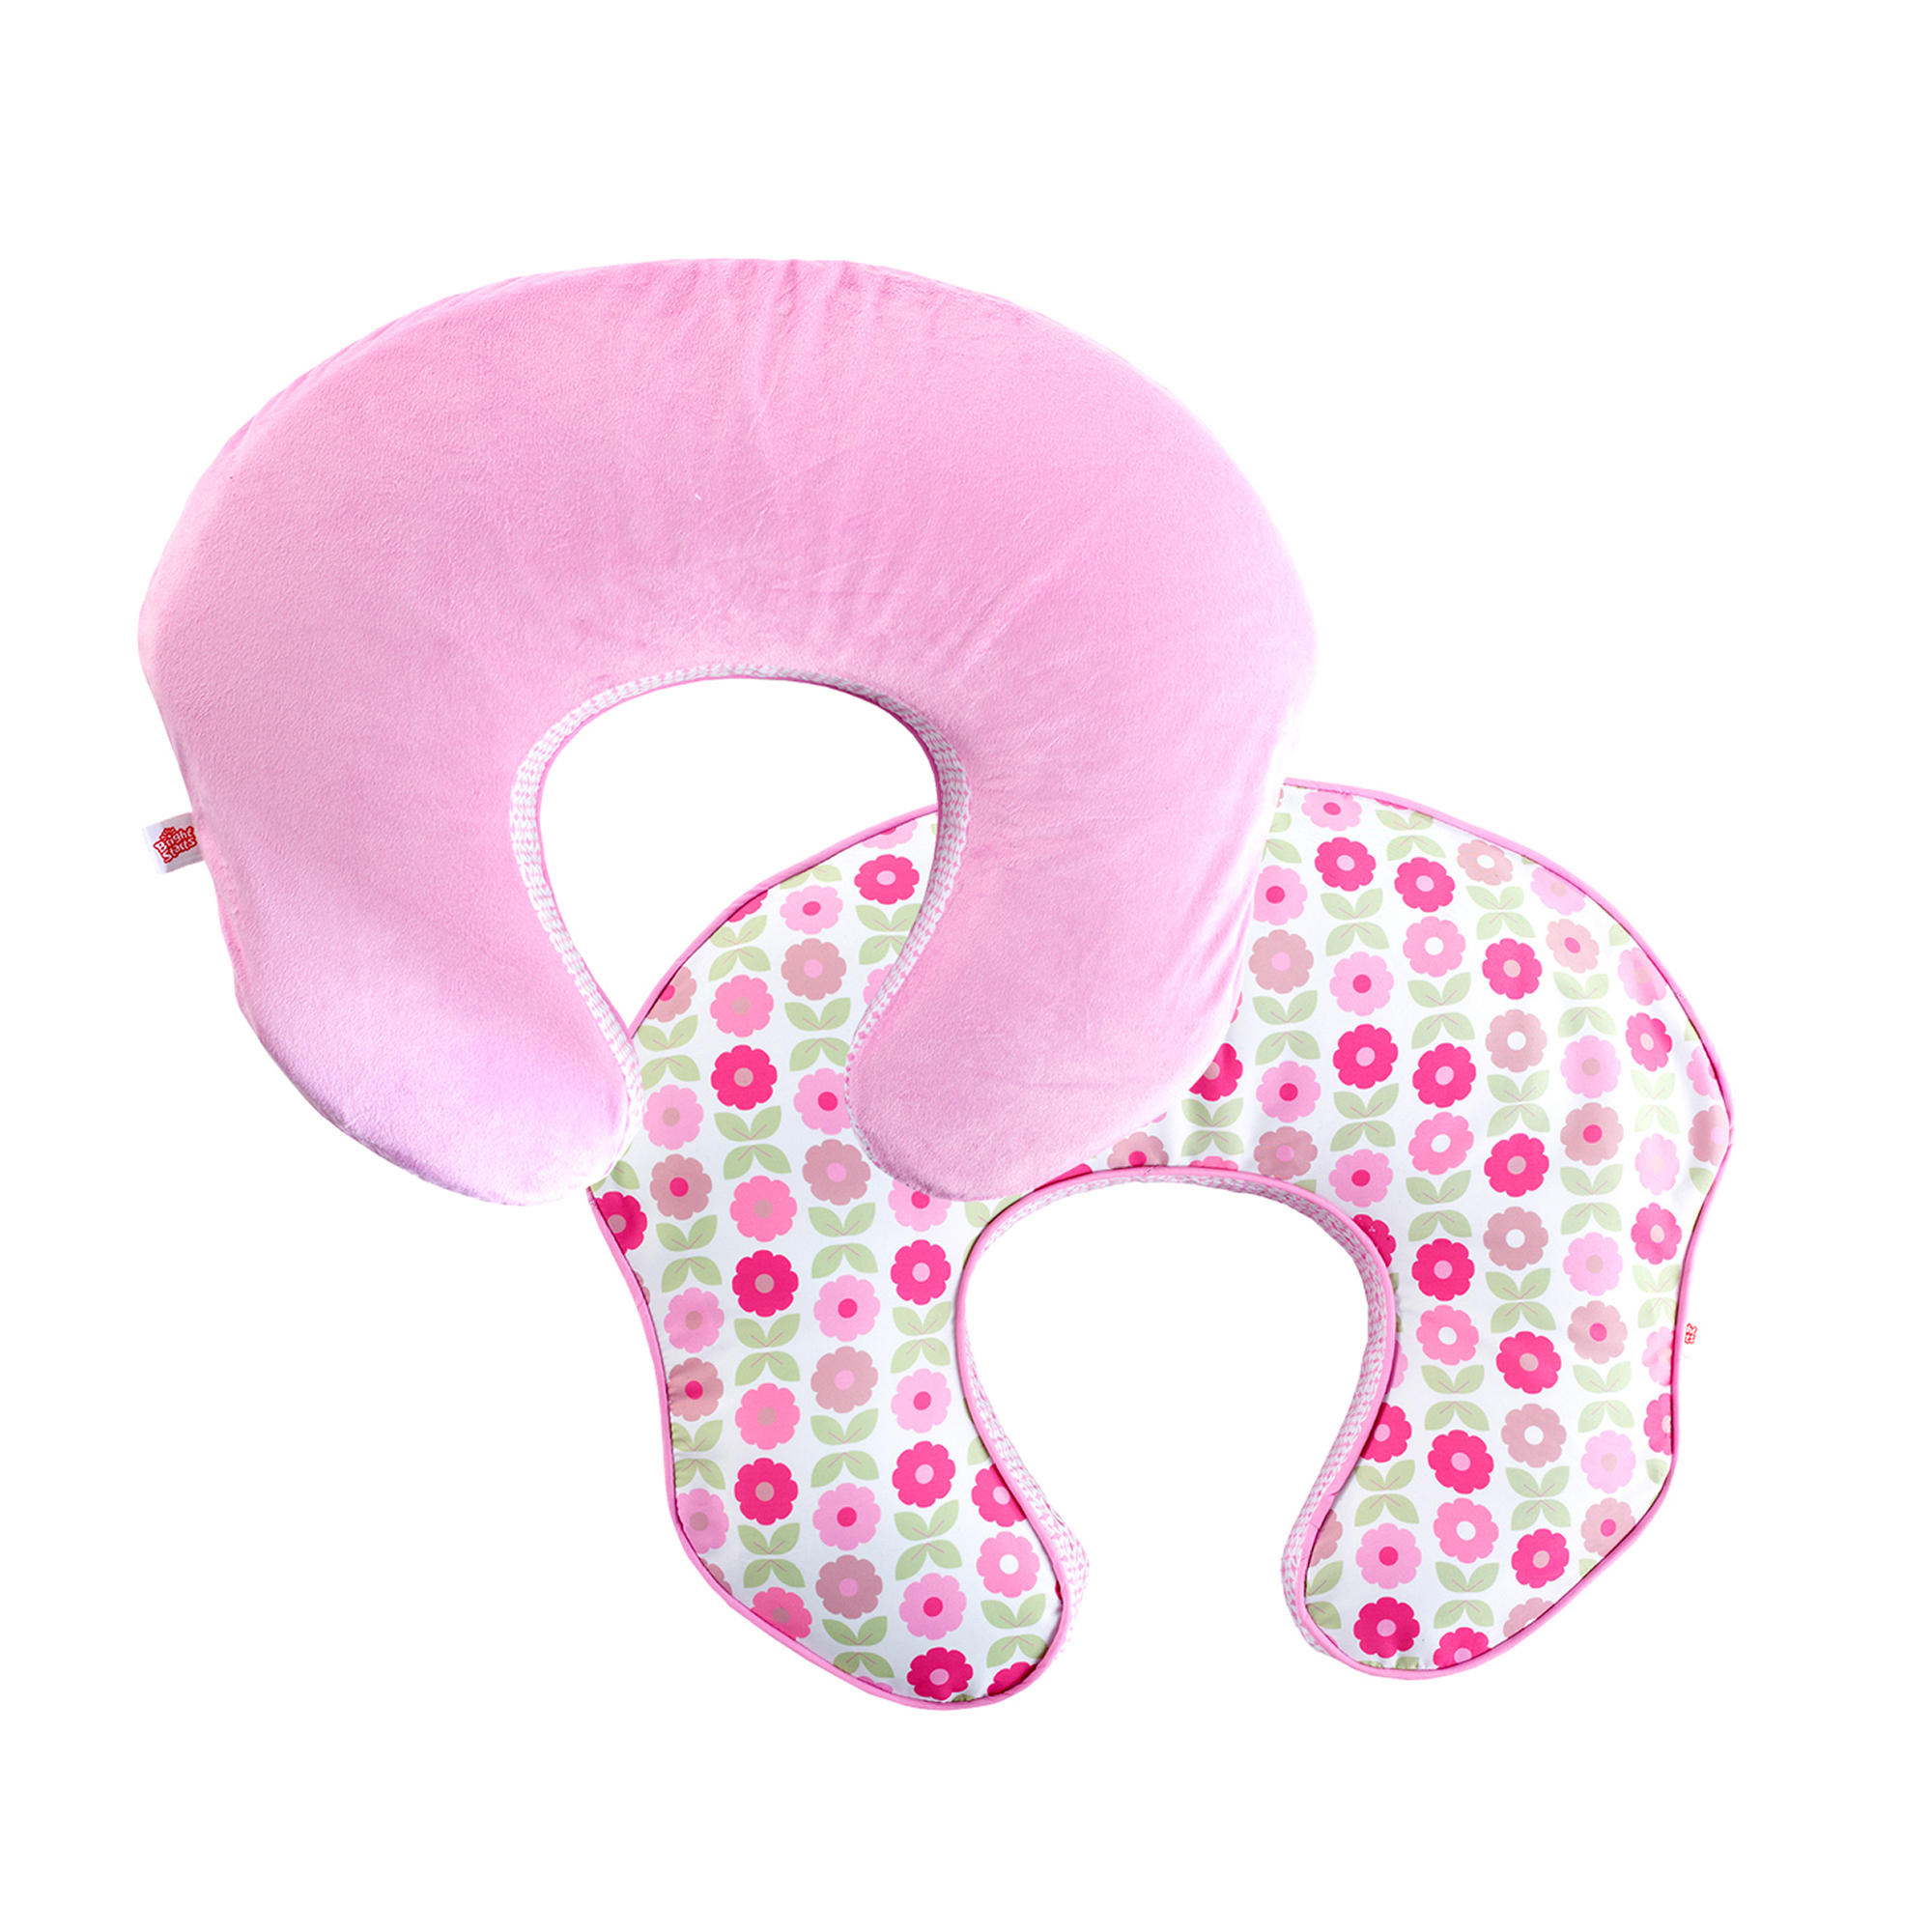 mombo Deluxe™ Nursing Pillow Slipcover - Blush 'n Bloom™